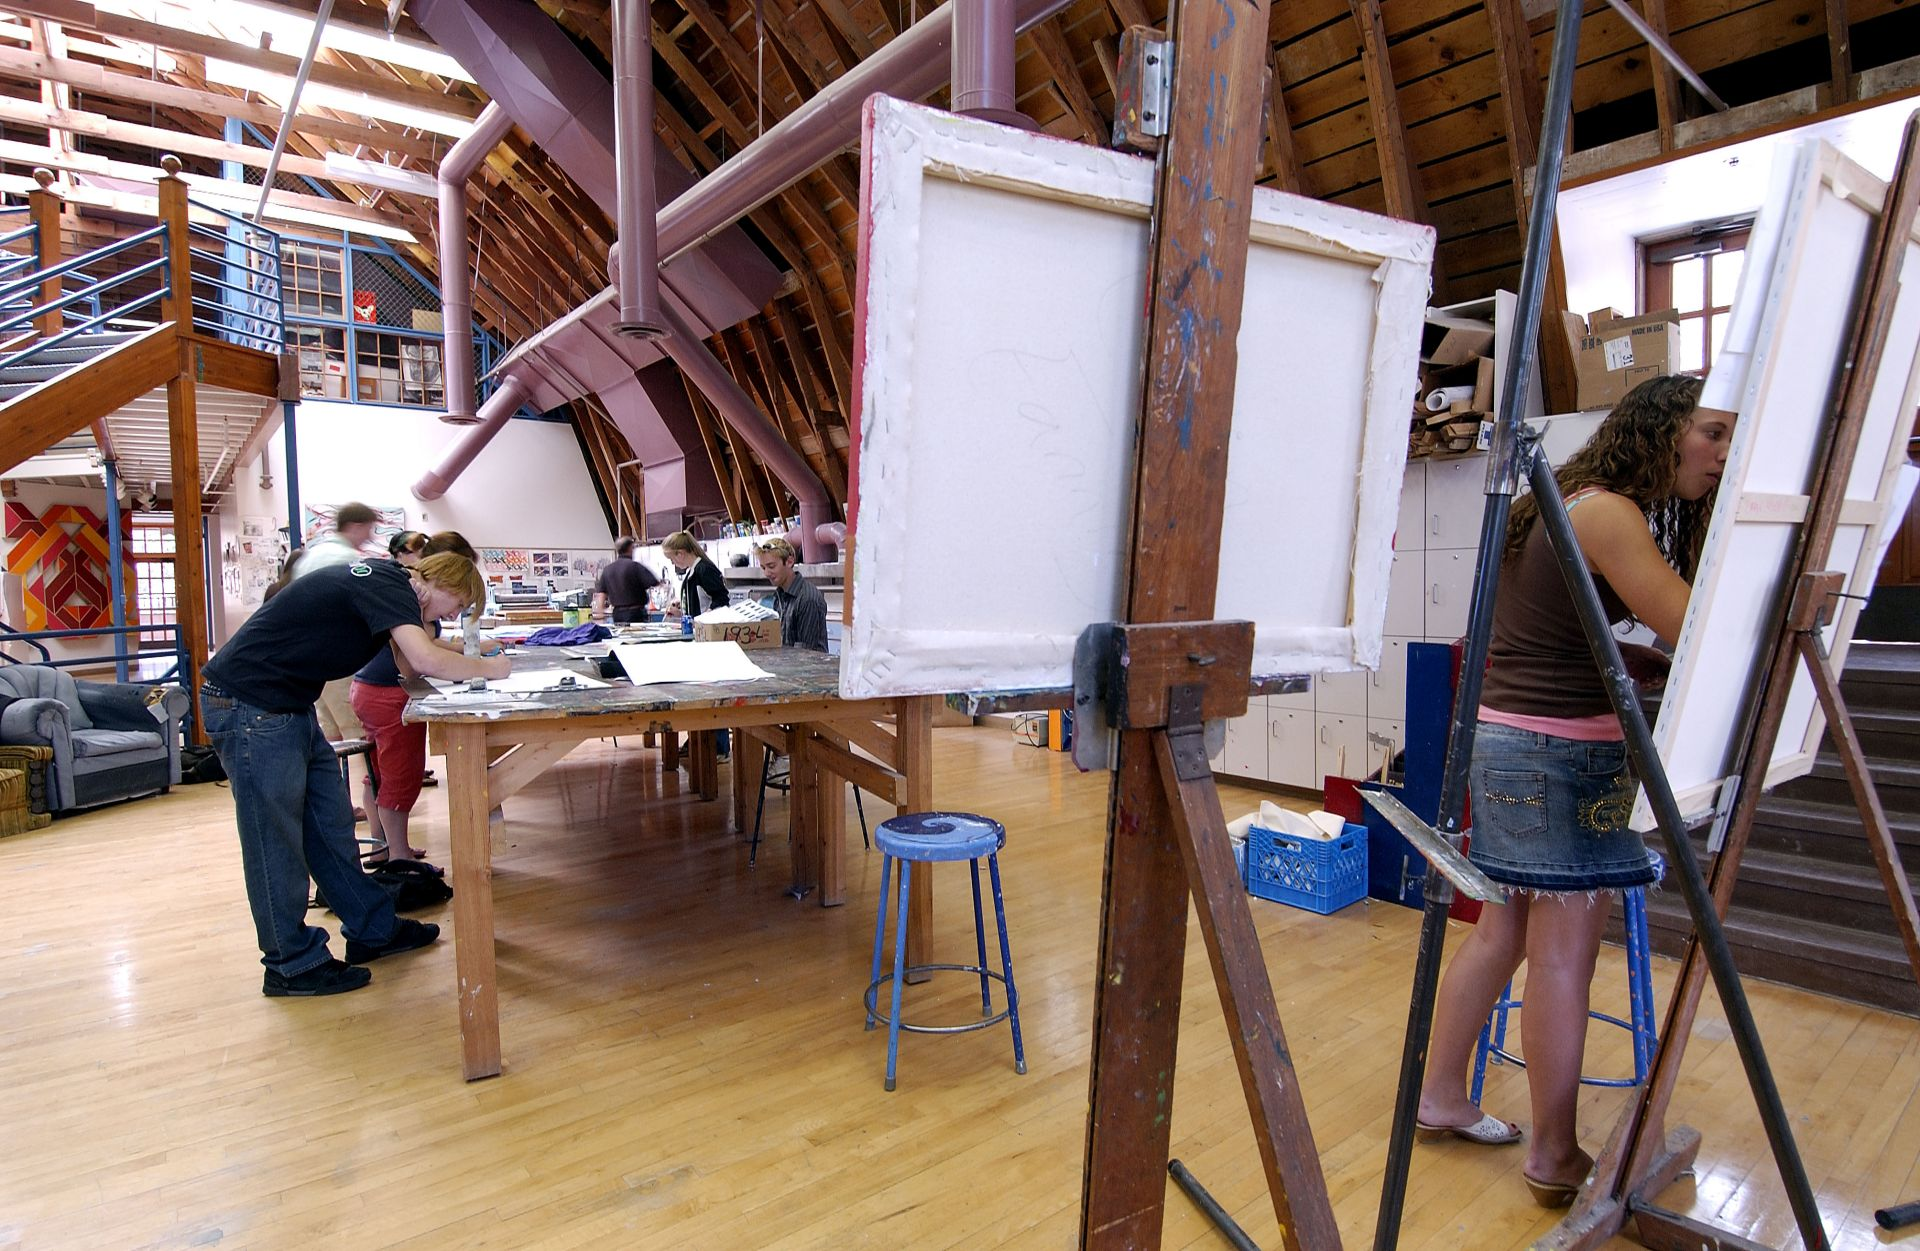 Inside the William Thayer Tutt Arts Center (Art Barn)